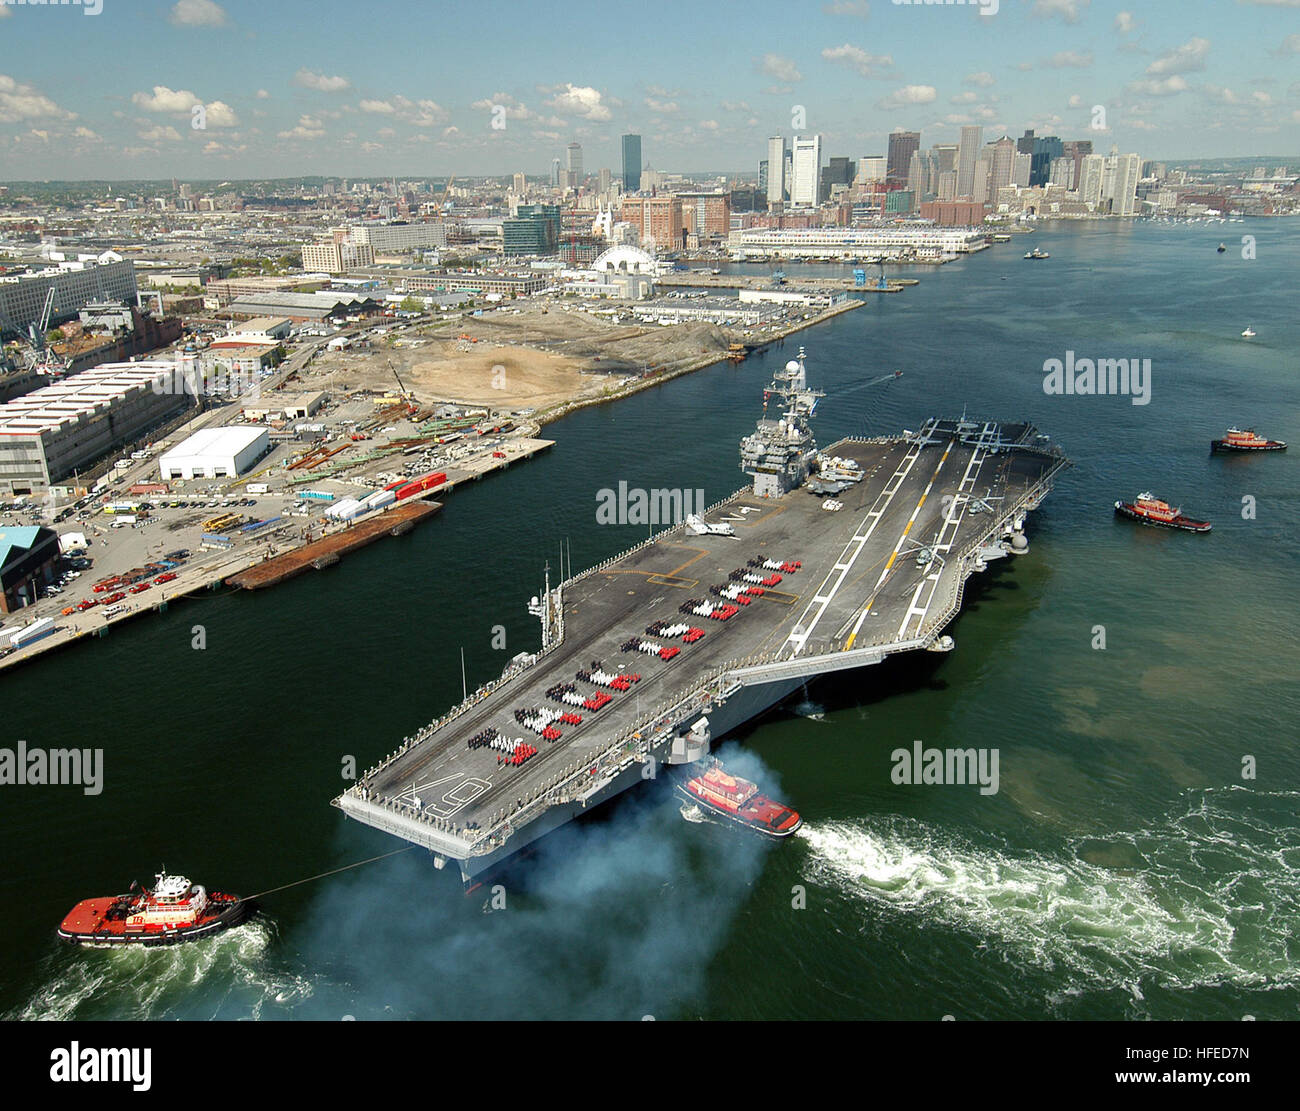 050519-N-8704K-001 Boston, Mass. (May 19, 2005) Ð The conventionally powered aircraft carrier USS John F. Kennedy Stock Photo